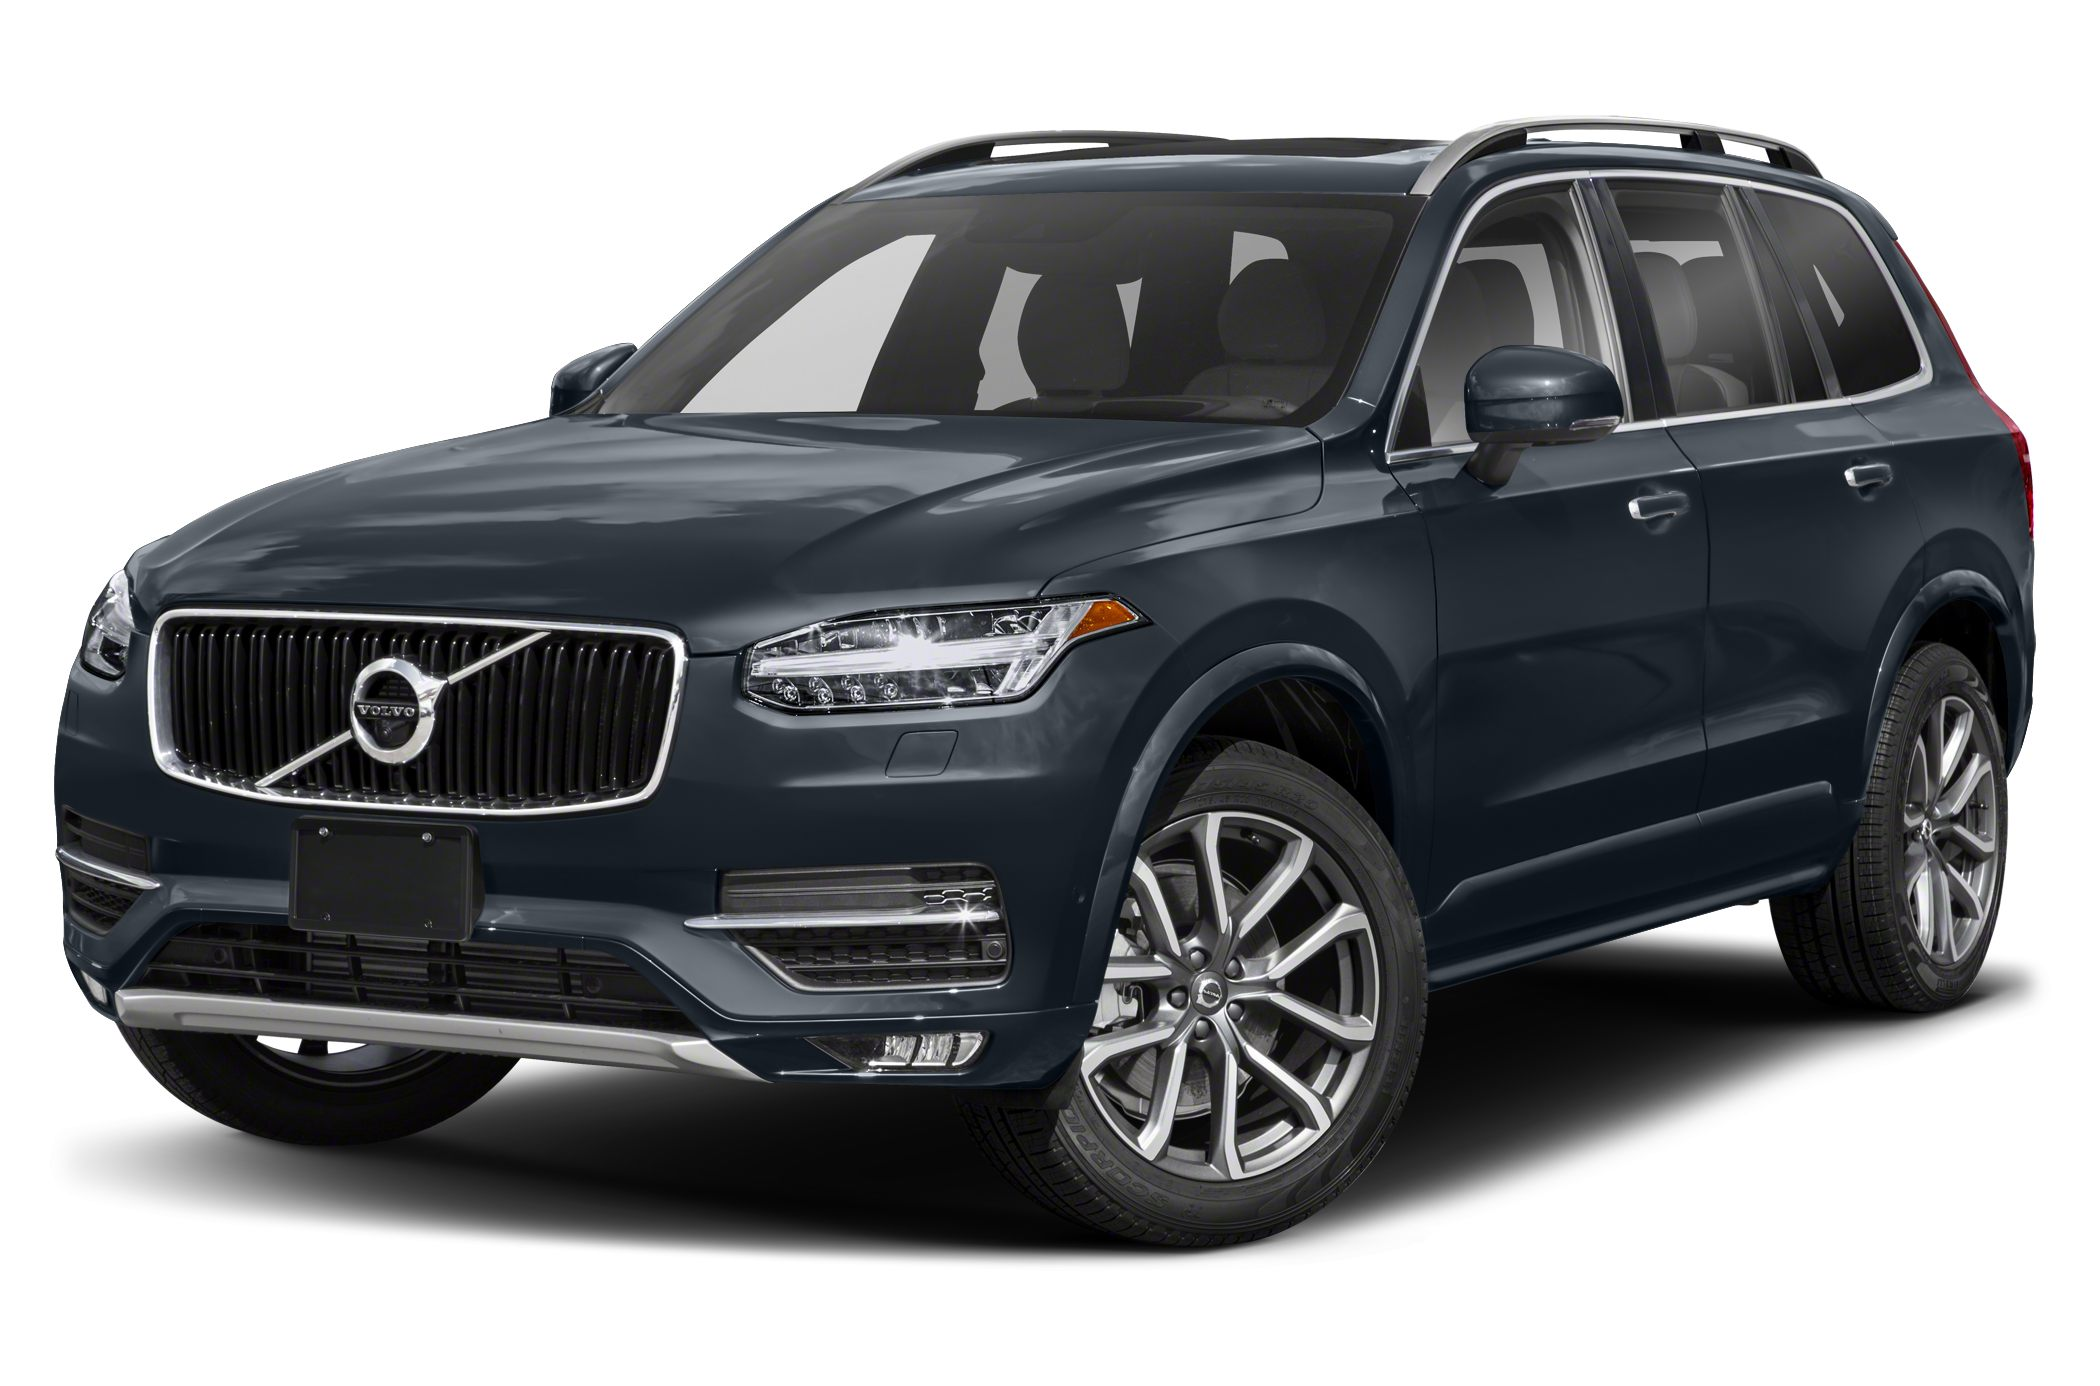 2019 Volvo XC90 T6 Momentum 4dr All-wheel Drive